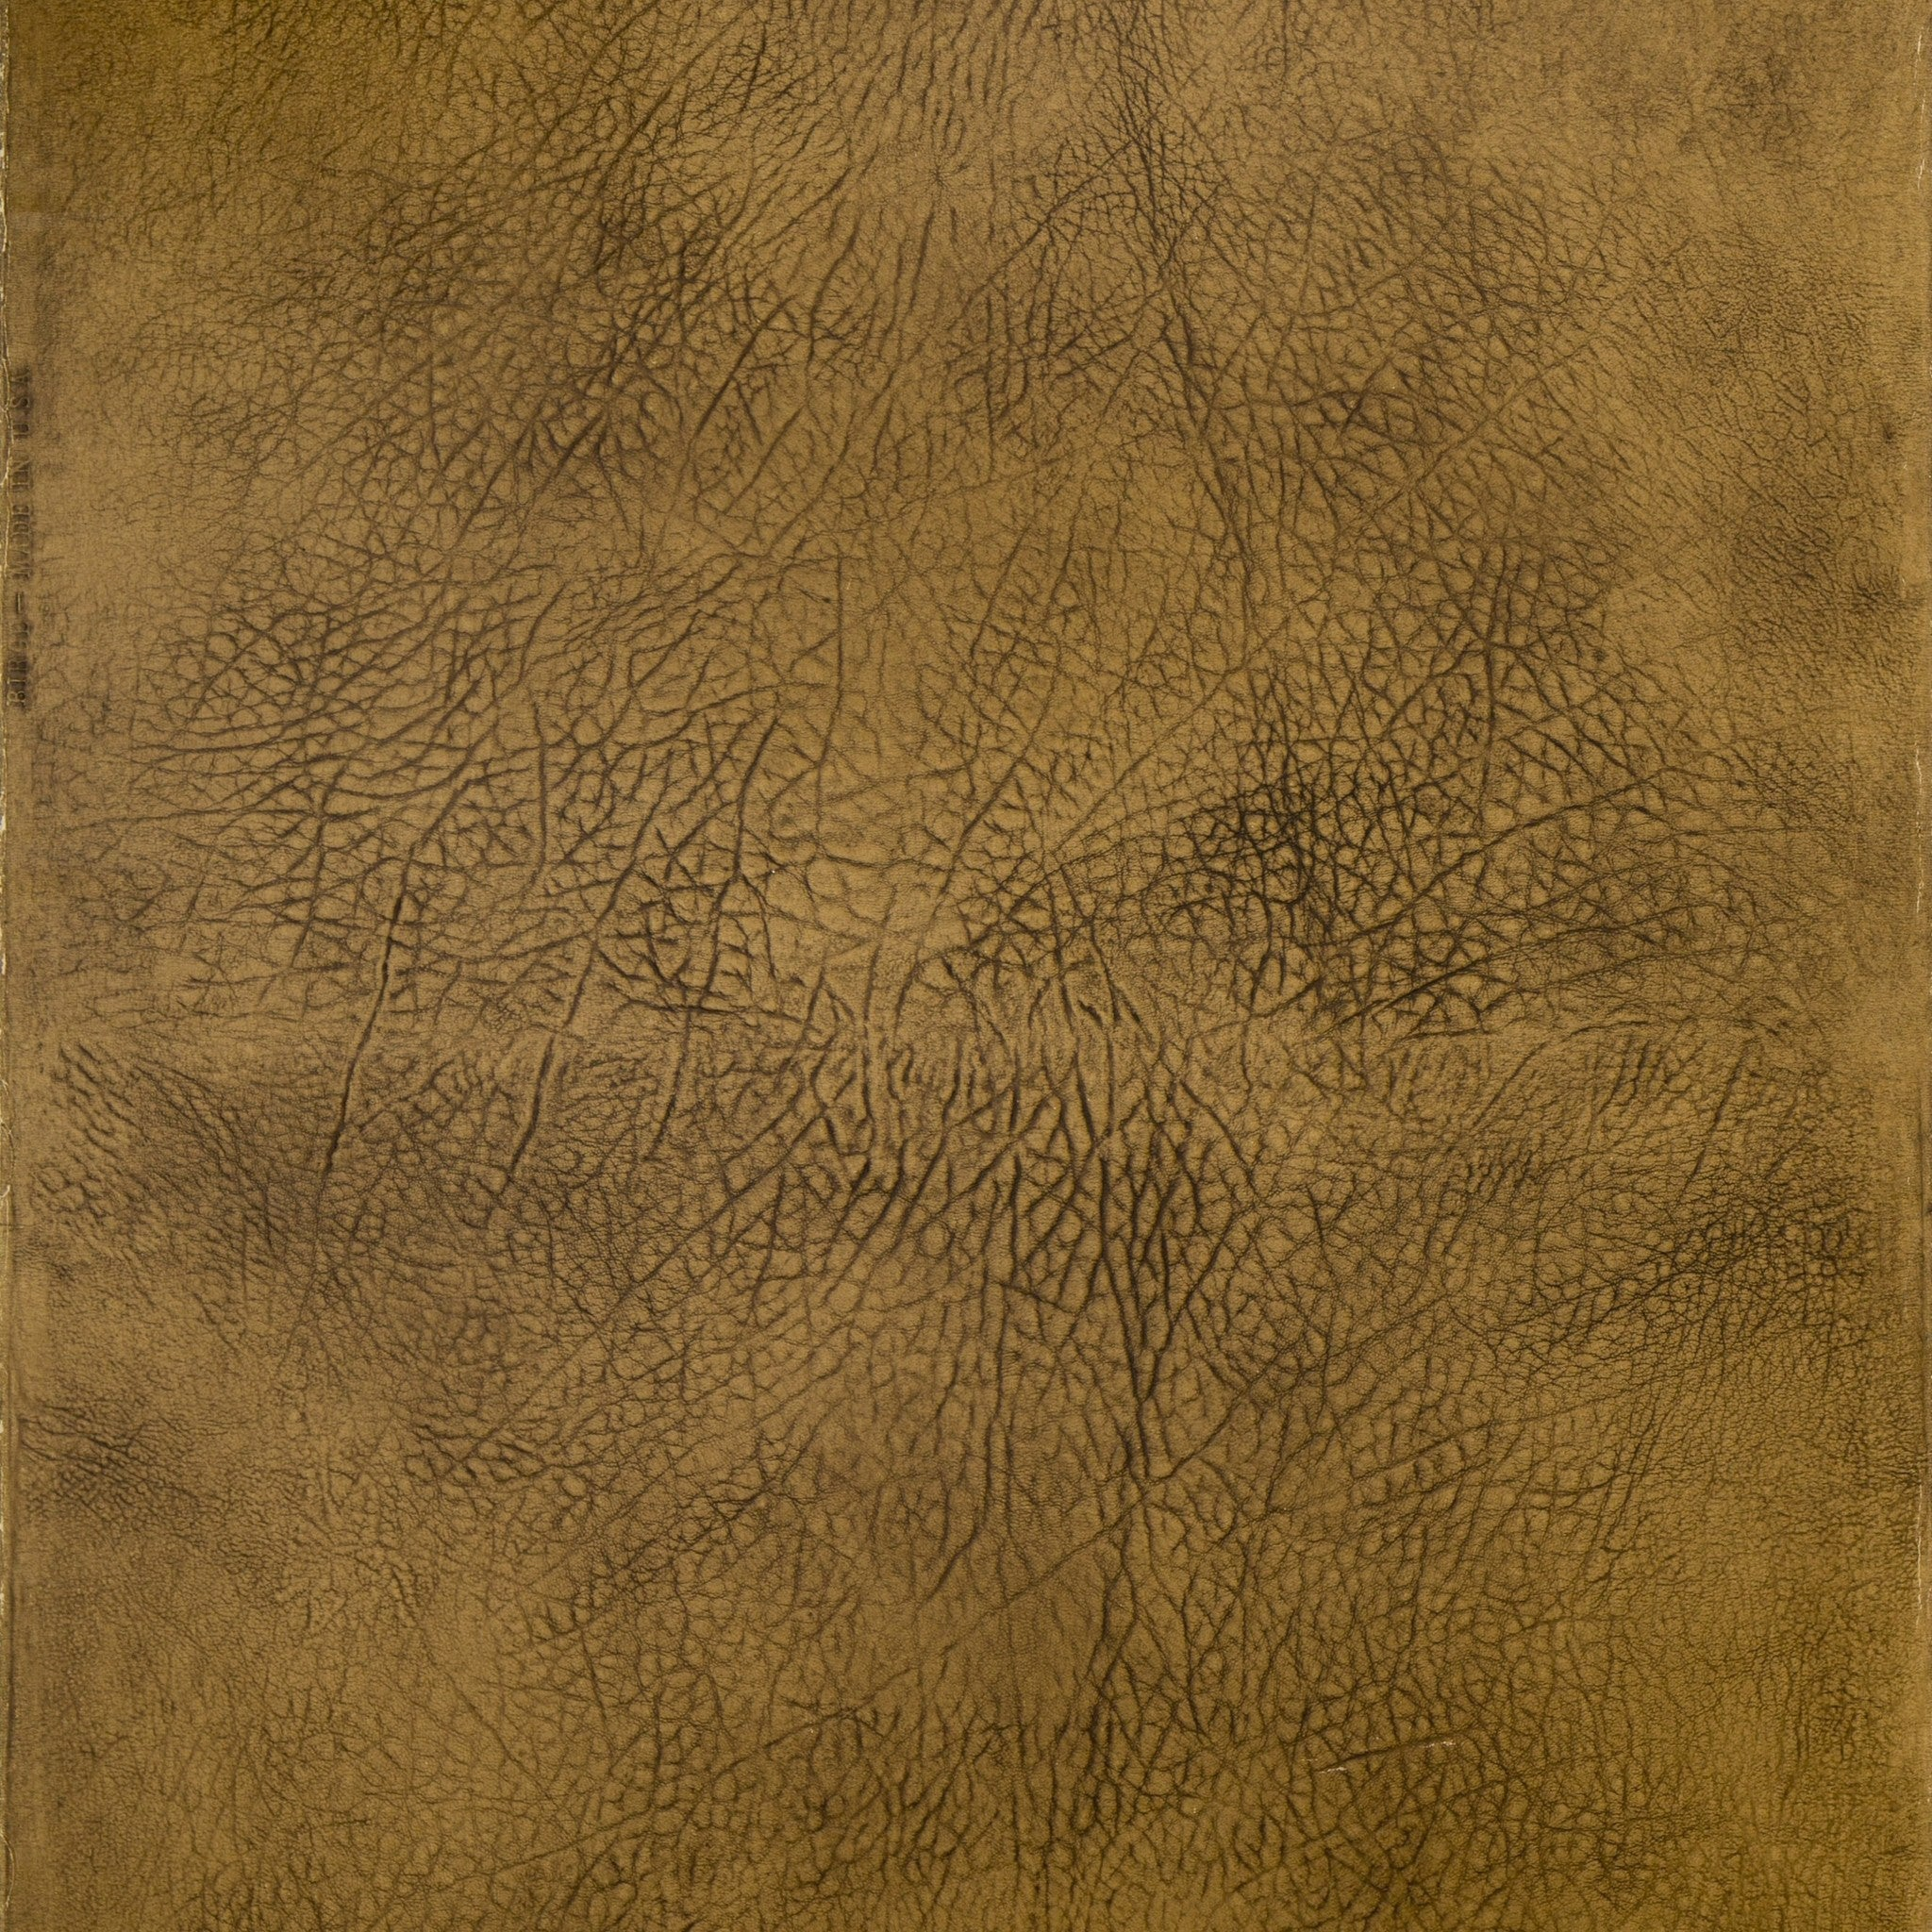 Embossed Leather Hide Paper Antique Wallpaper Bolling